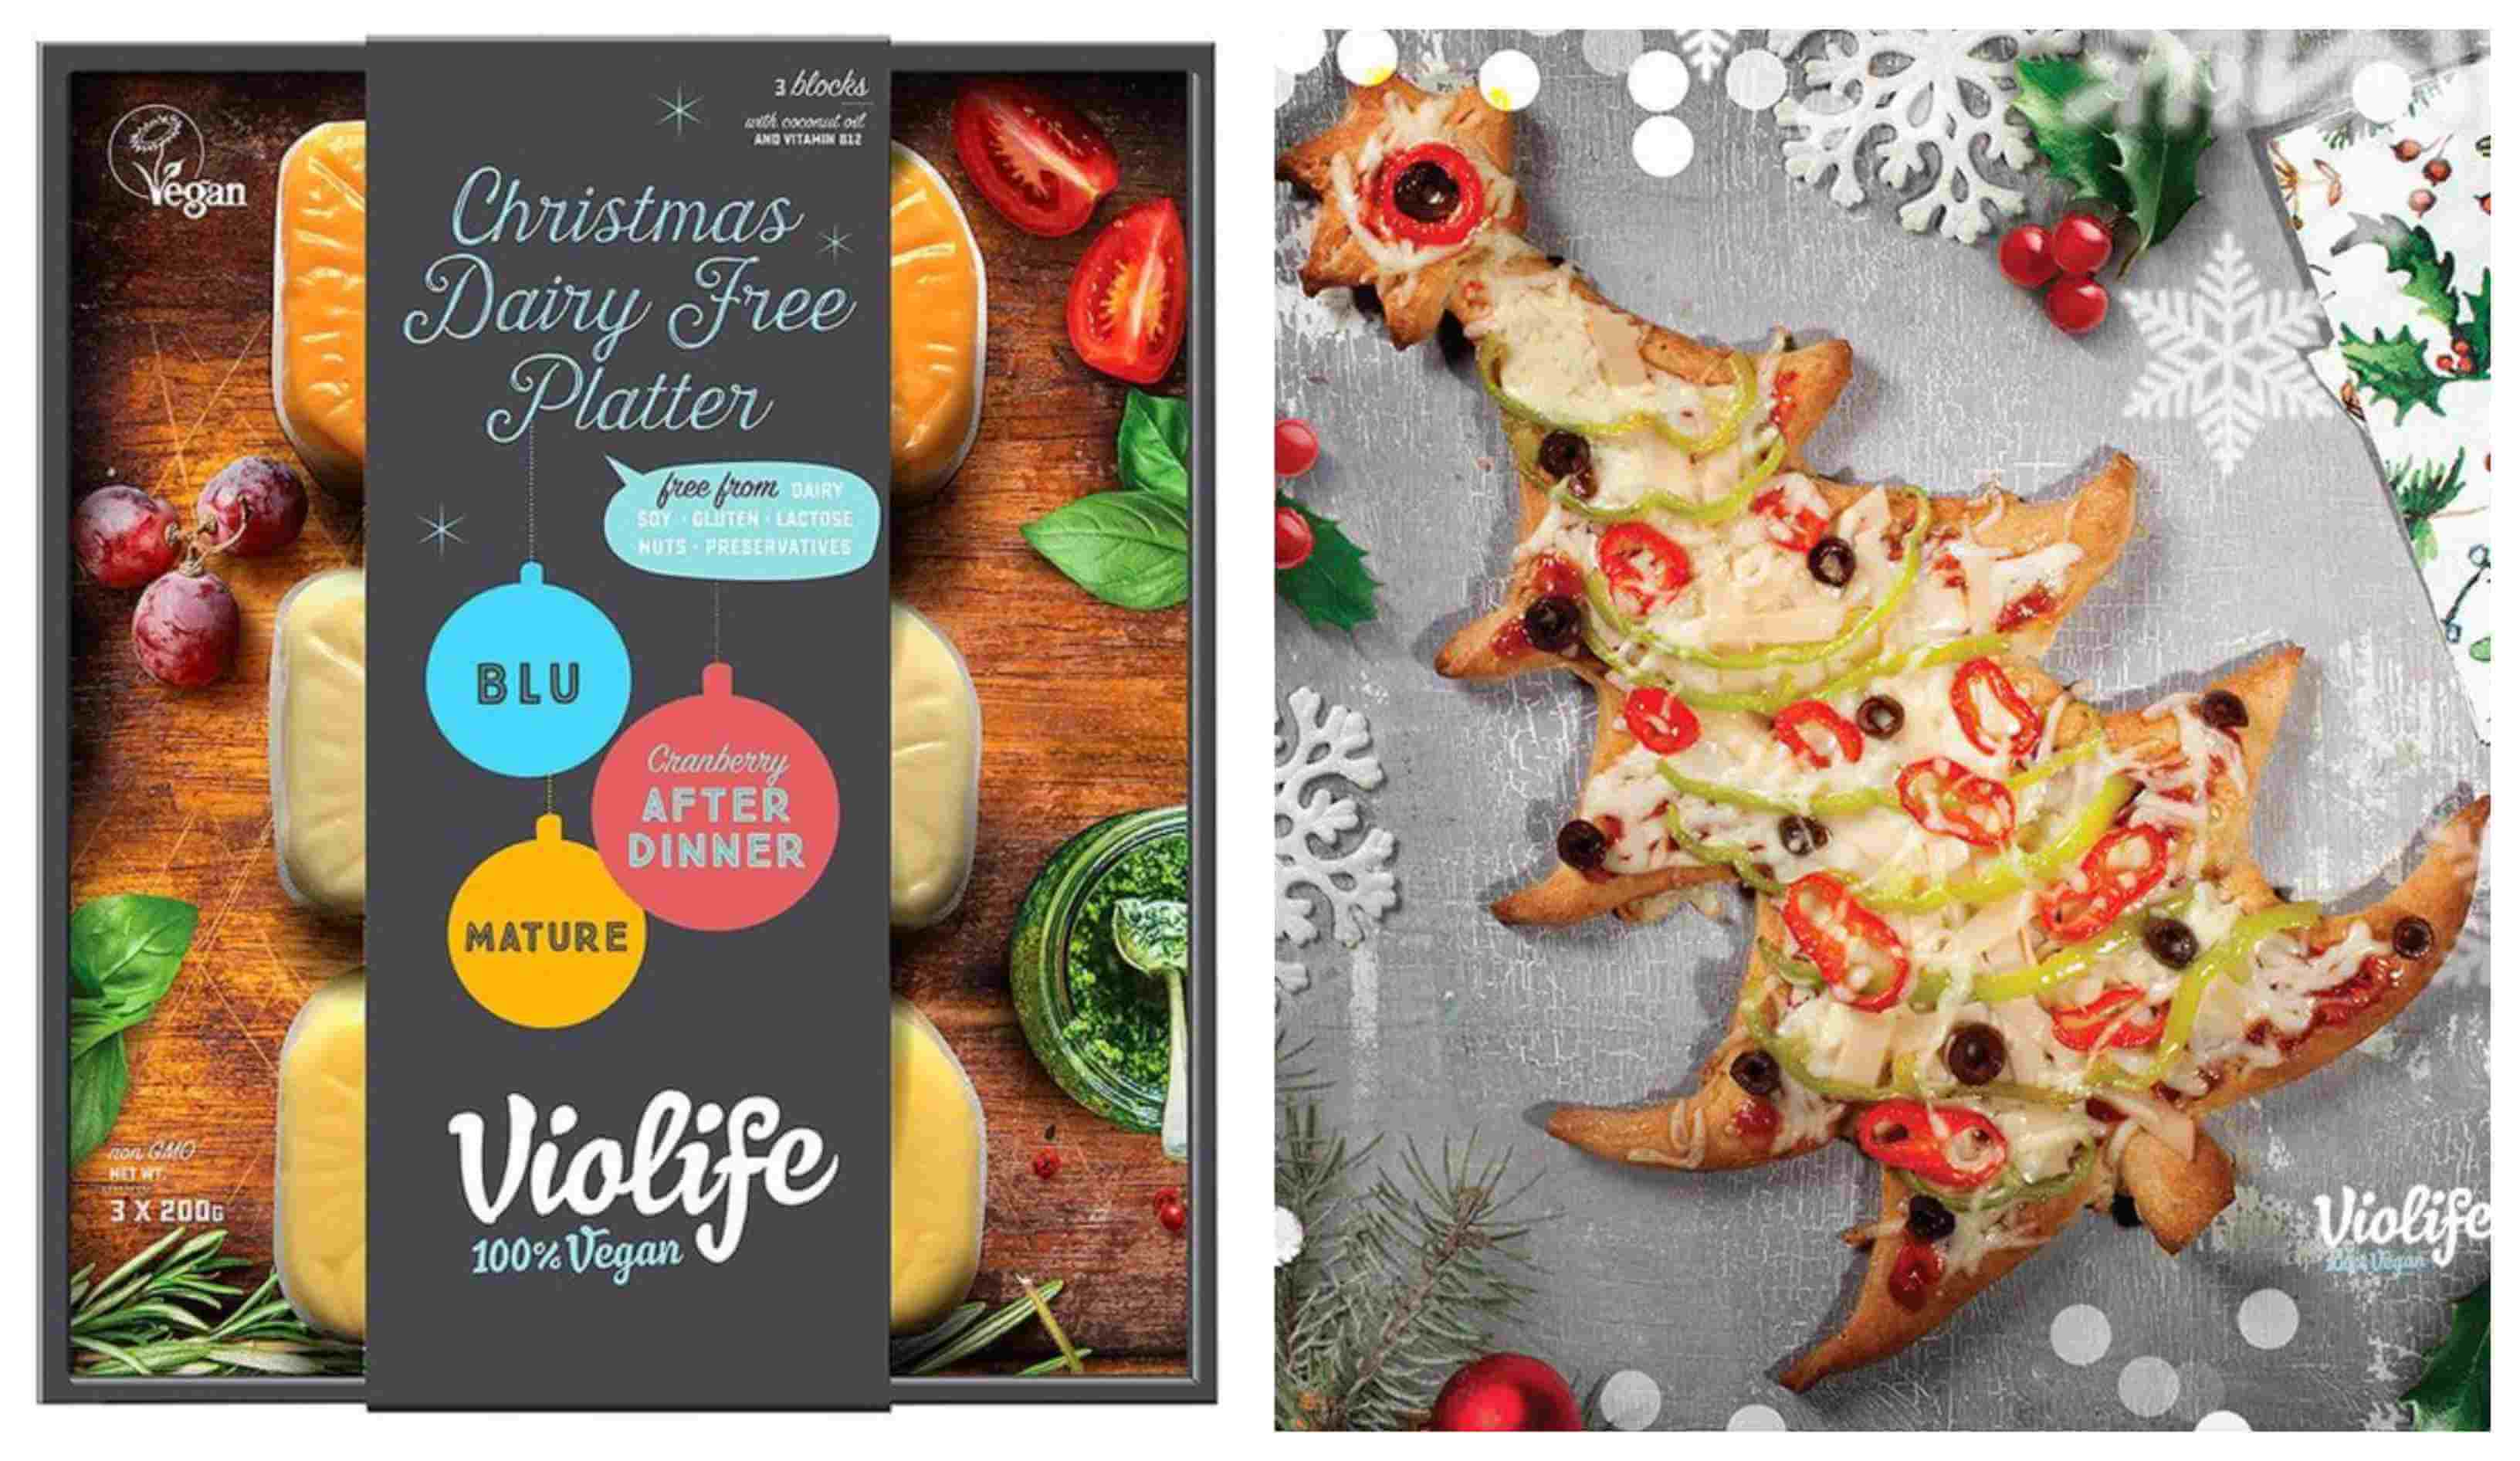 violife cheeseplatter-christmas